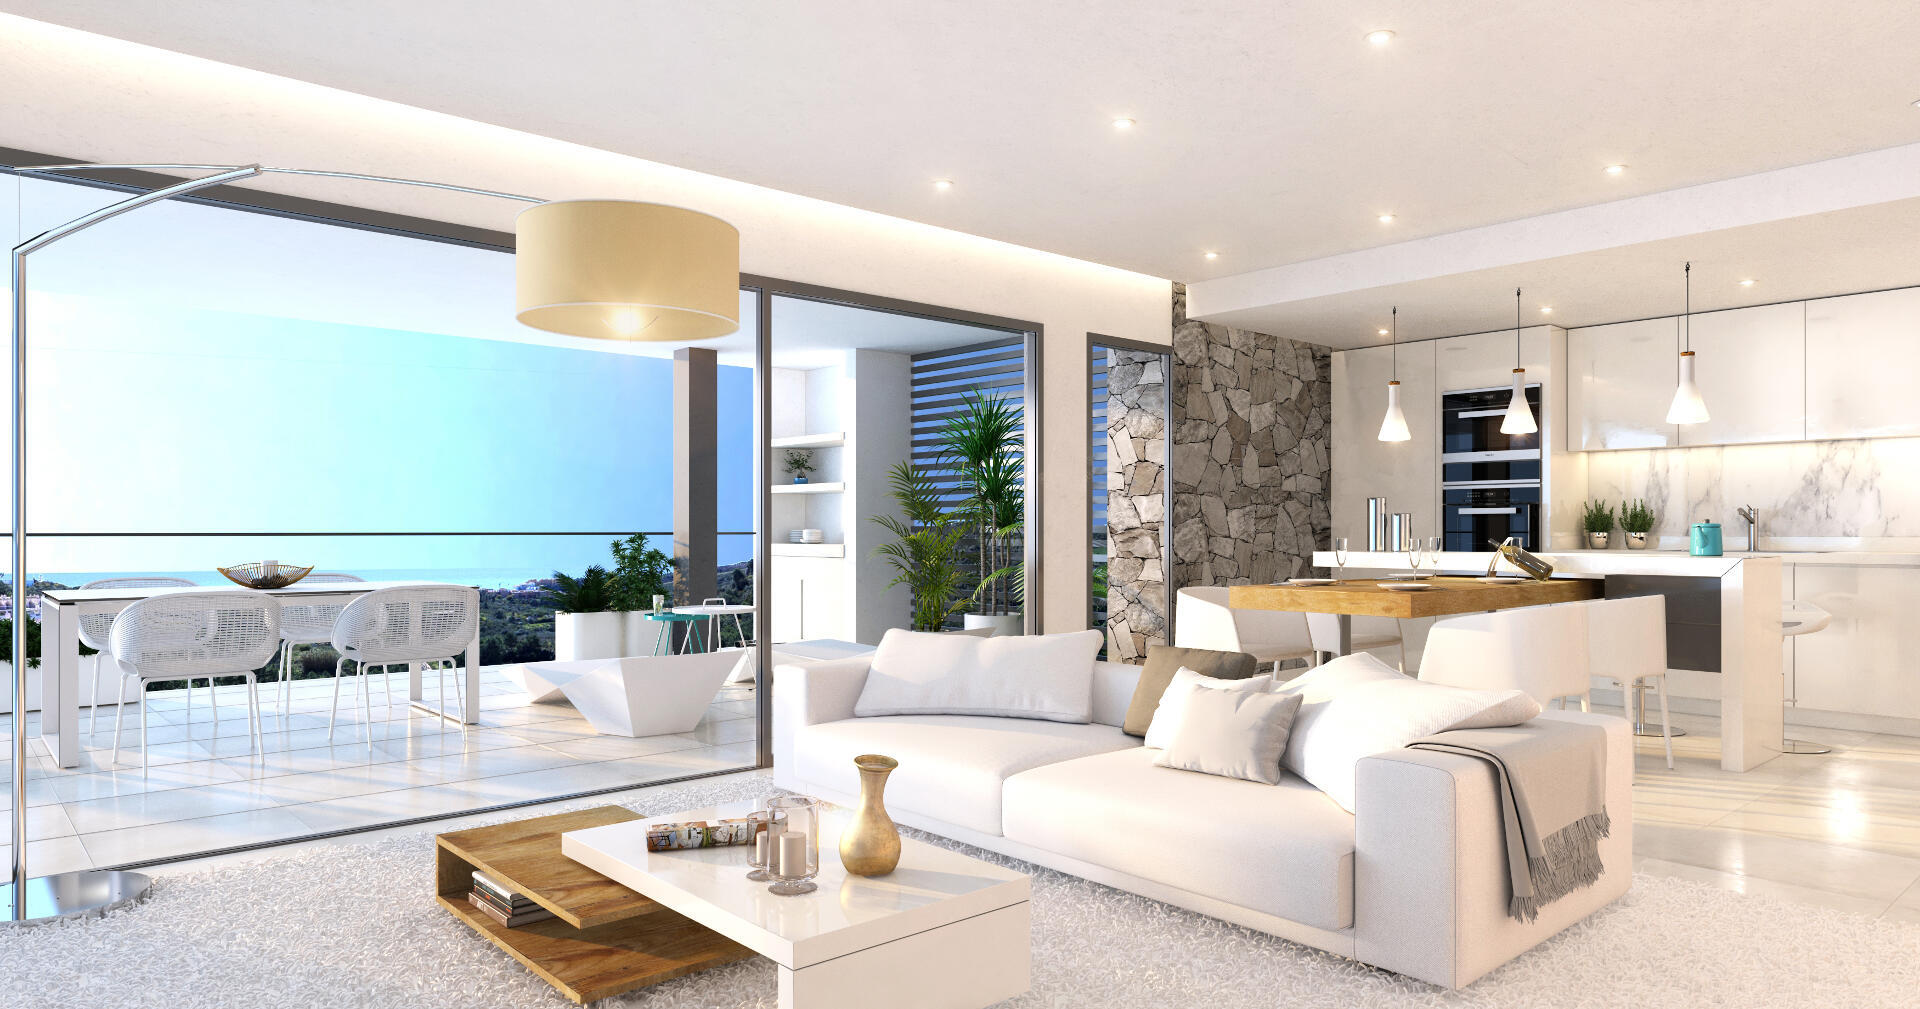 https://www.realista.com/wp-content/uploads/2018/04/Agora-apartment-penthouse-new-project-development-for-sale-Estepona_Realista-Quality-Properties-Marbella-3.jpg